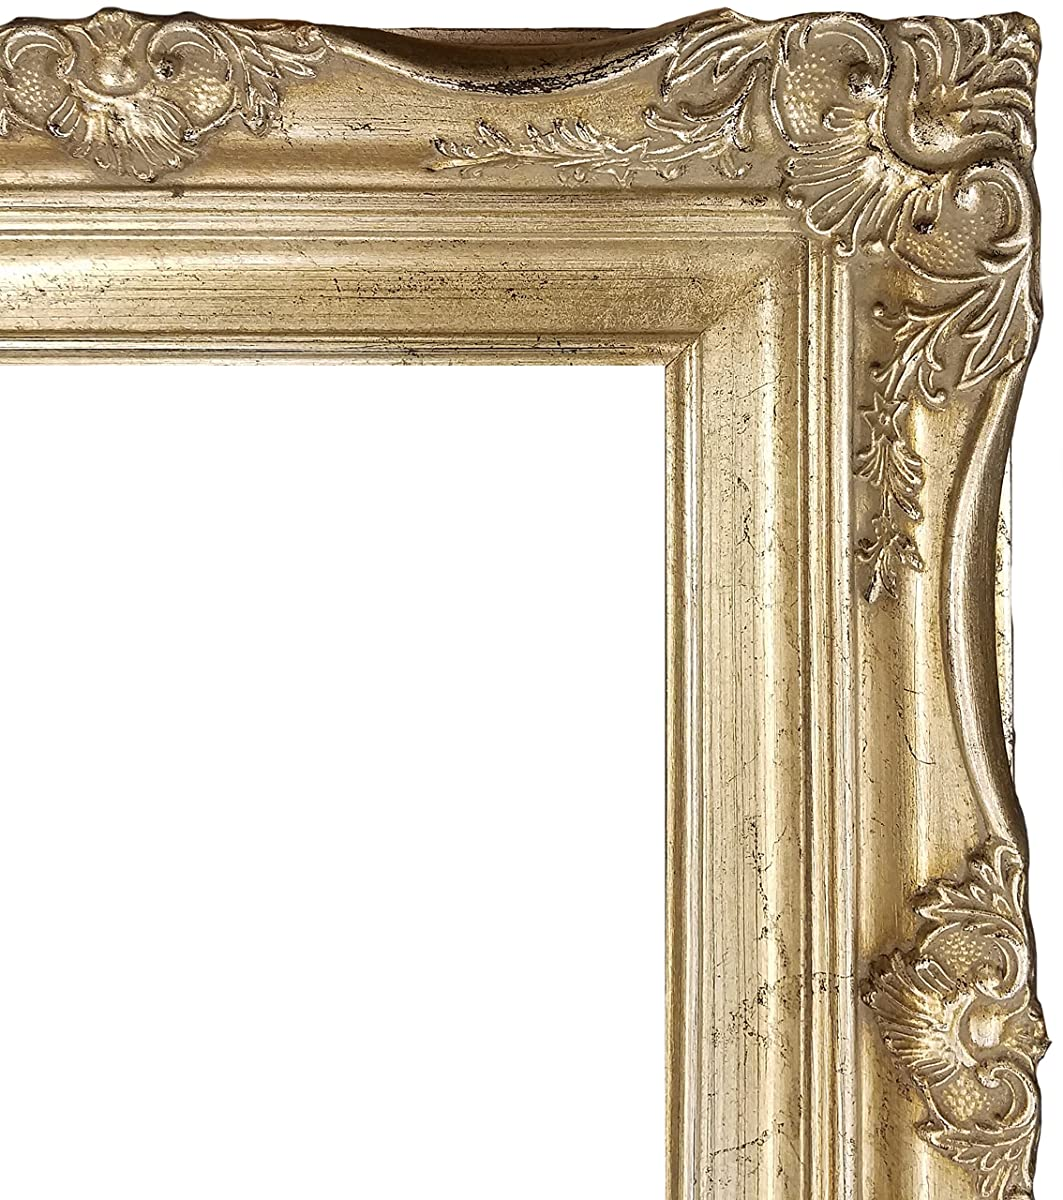 4 vintage ornate baroque french silver picture frame 11x14 4 vintage ornate baroque french silver picture frame 11x14 jeuxipadfo Image collections